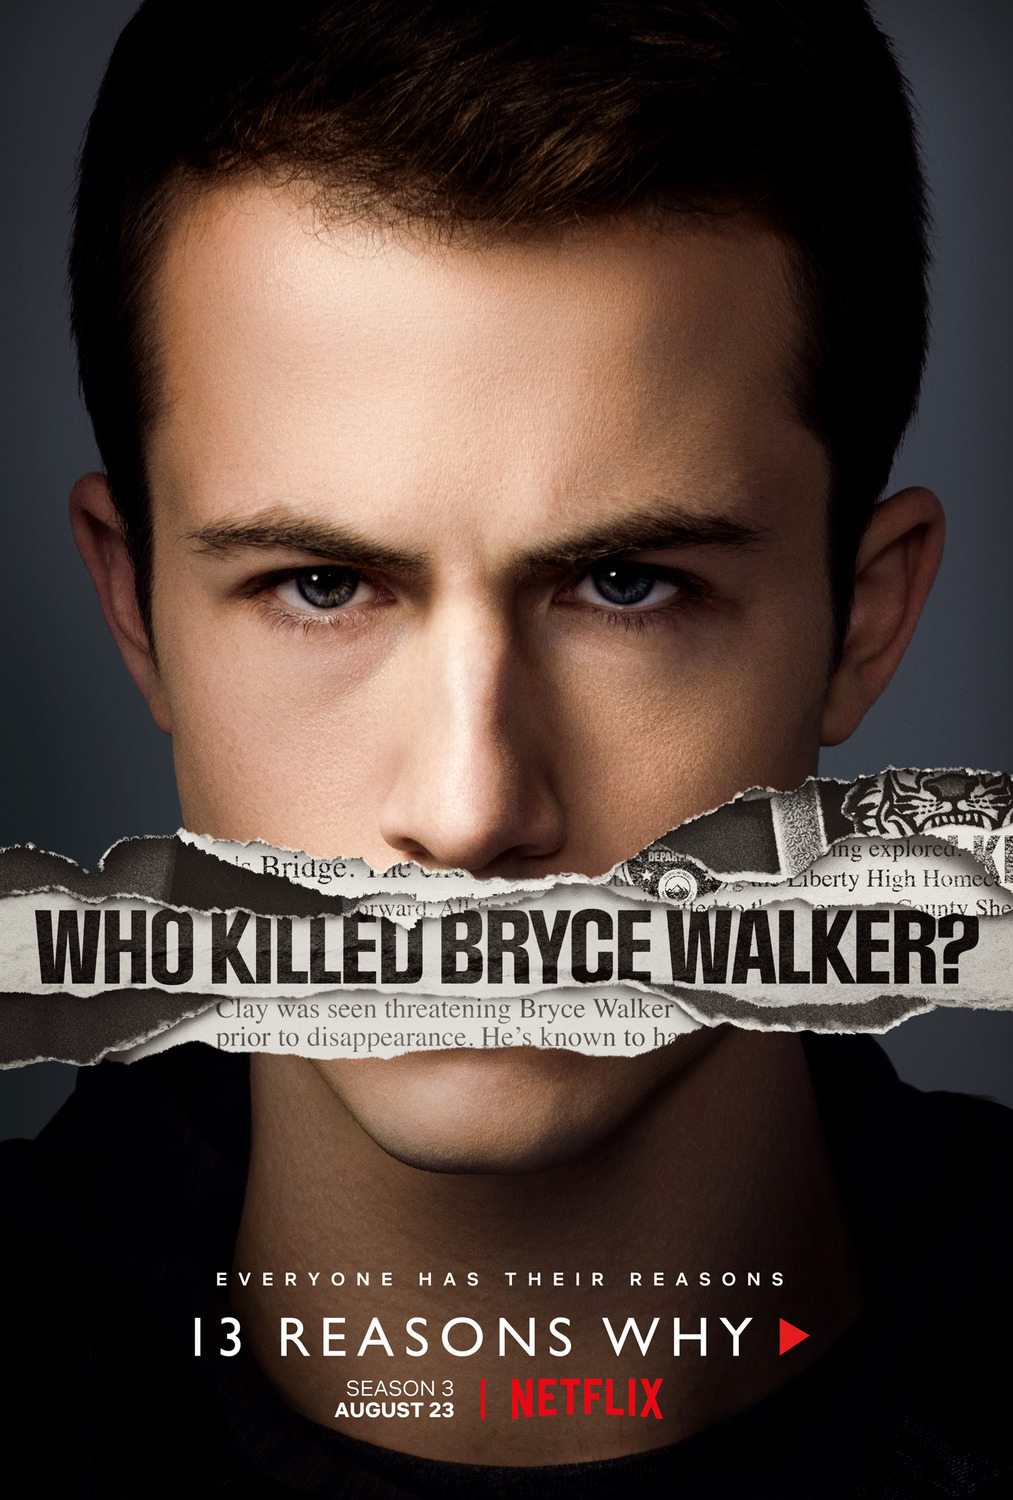 Season three was advertised using posters with the faces of various characters, such as this one displaying a stoic Clay Jensen (Dylan Minnette).